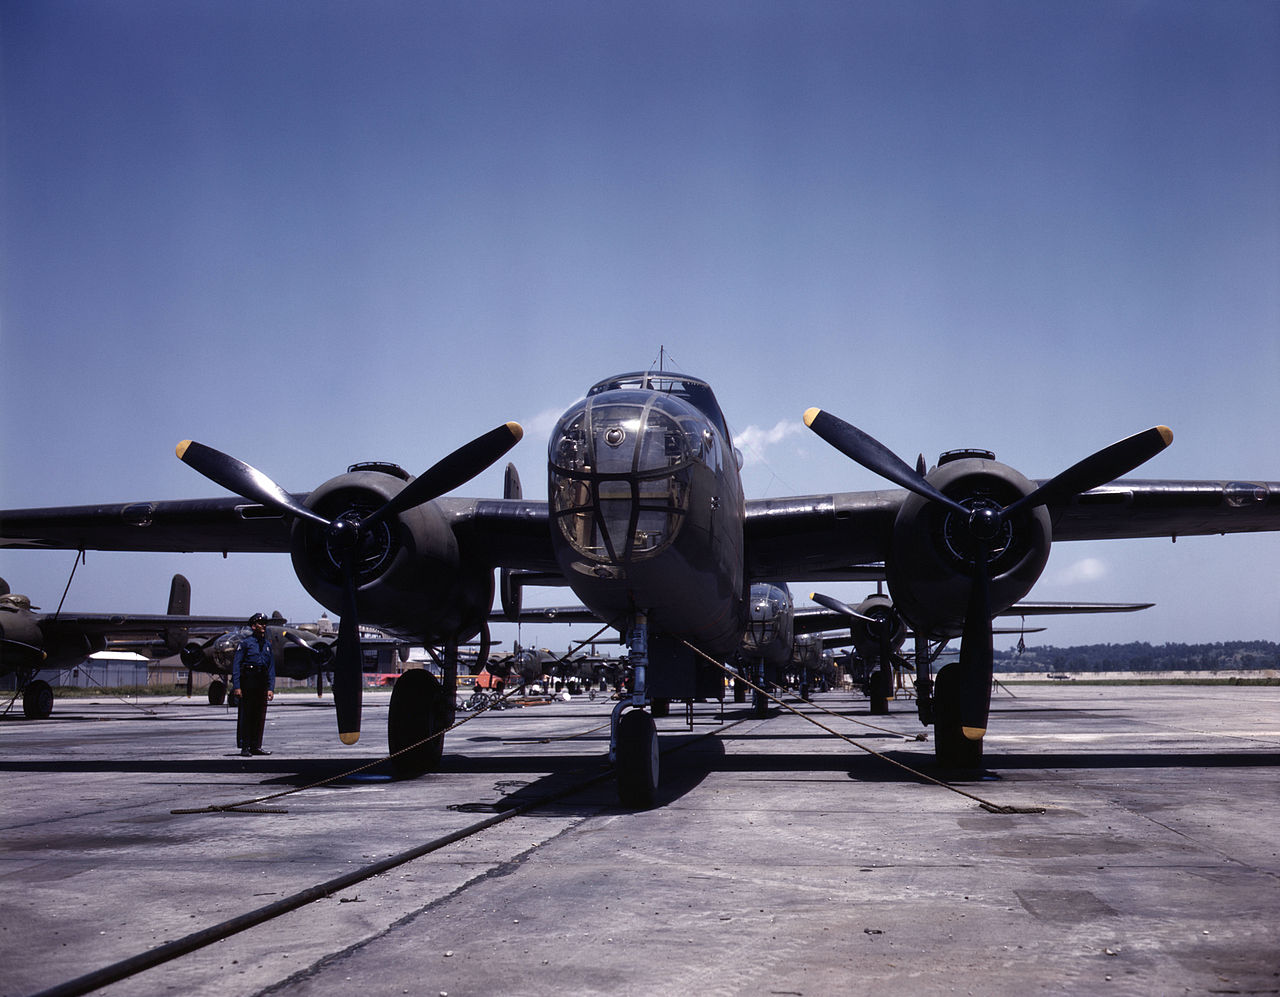 B-25 bombers on the outdoor assembly line at the North American Aviation plant in Kansas City, Kansas. Almost ready for their first test flight.